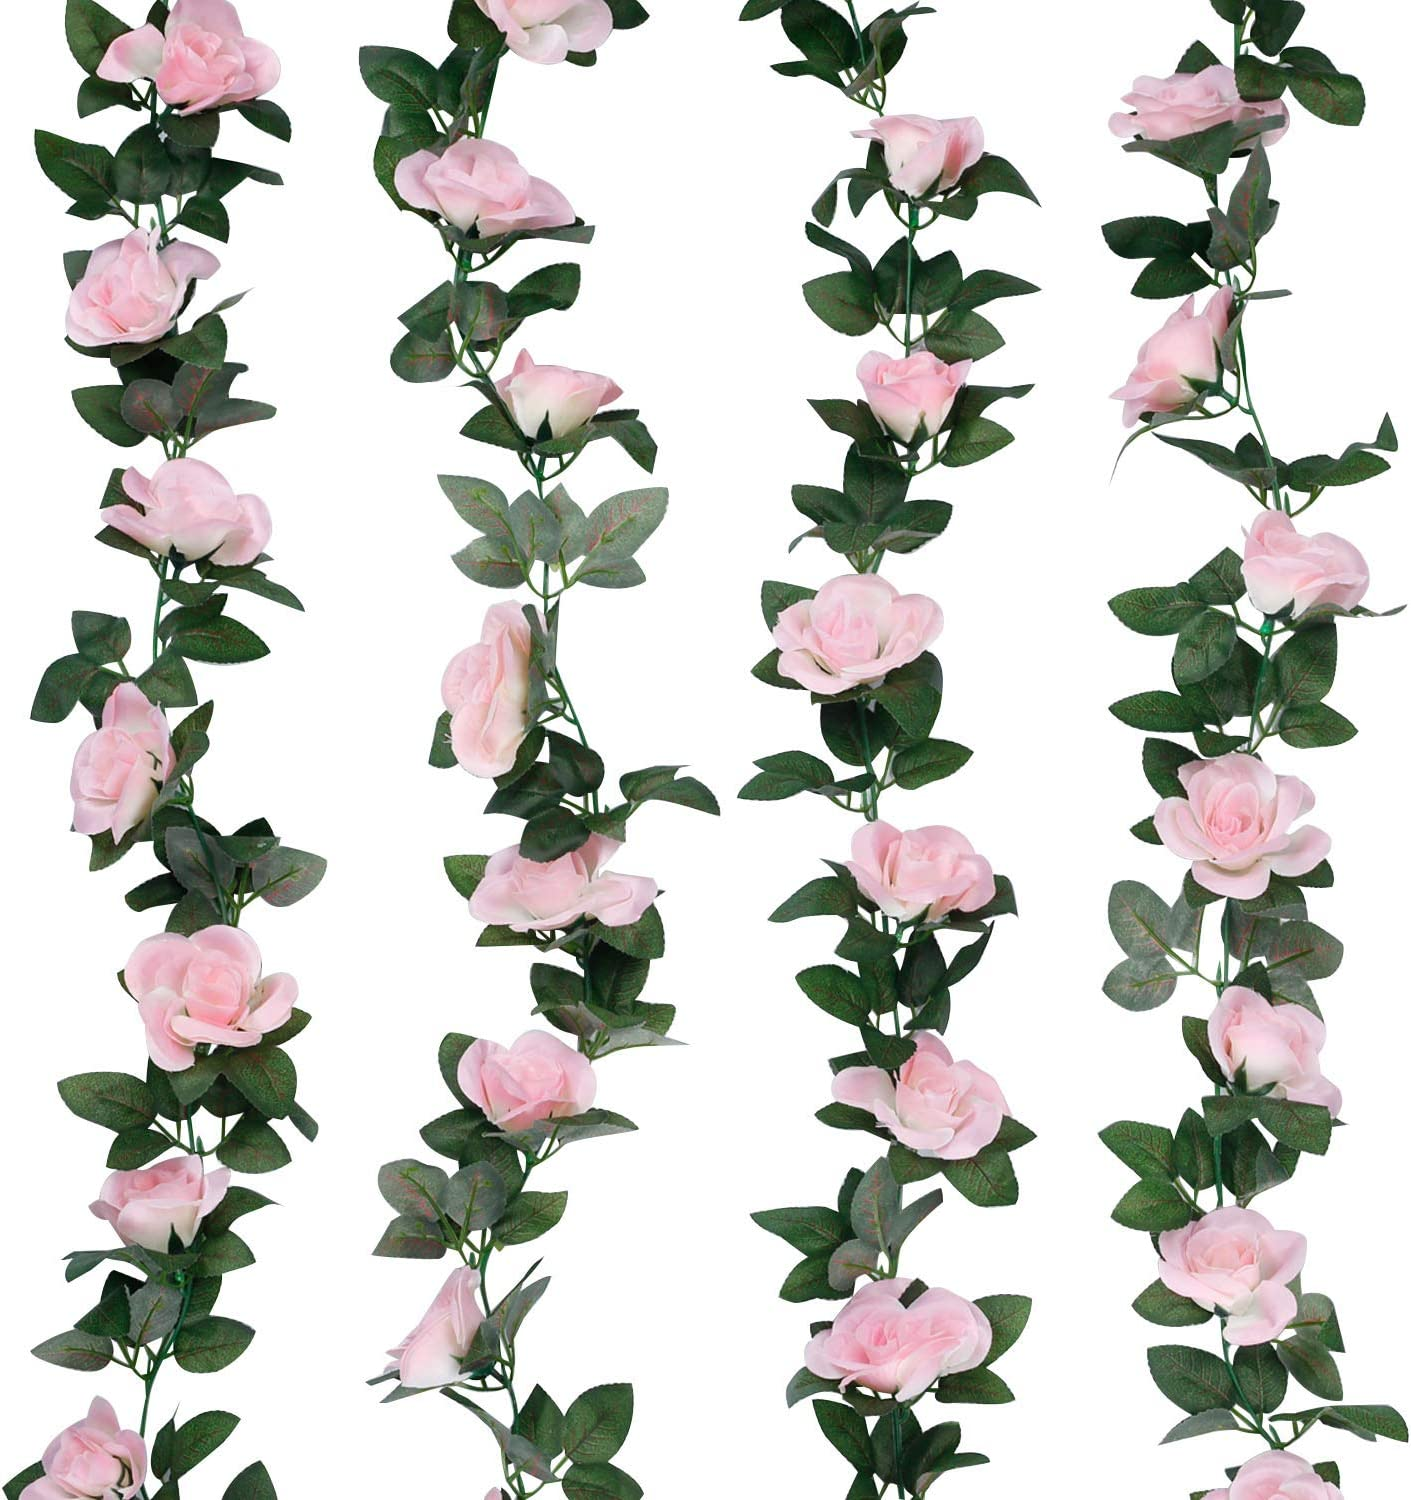 LIVILAN Artificial Flowers Fake Roses Vine Garland Hanging Rose Ivy Plants for Home Decor Wedding Arch Wall Decoration Garden Craft Office Party Hotel Pink